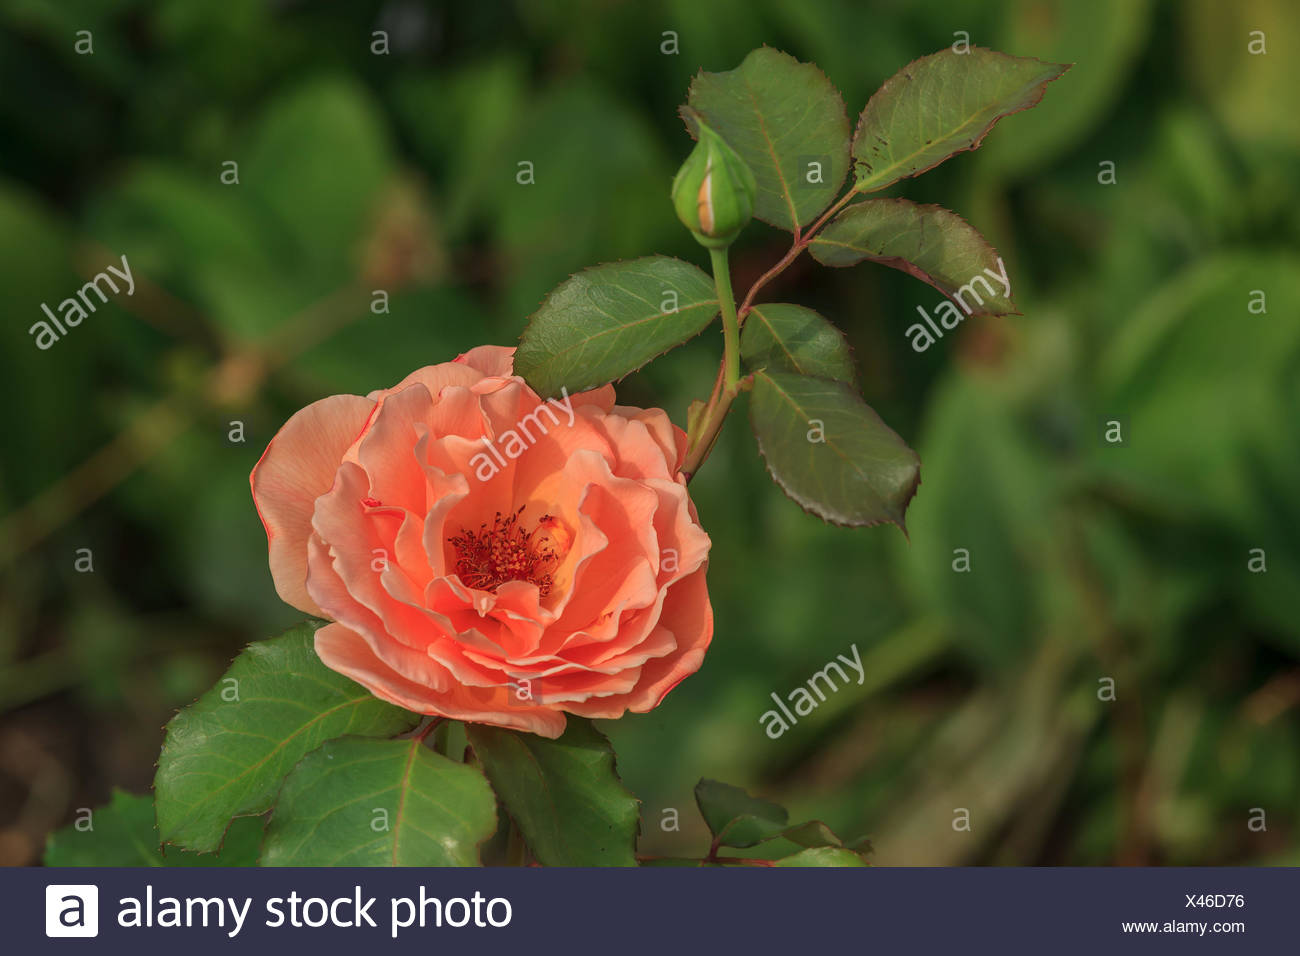 rosebush with flower and bud Stock Photo